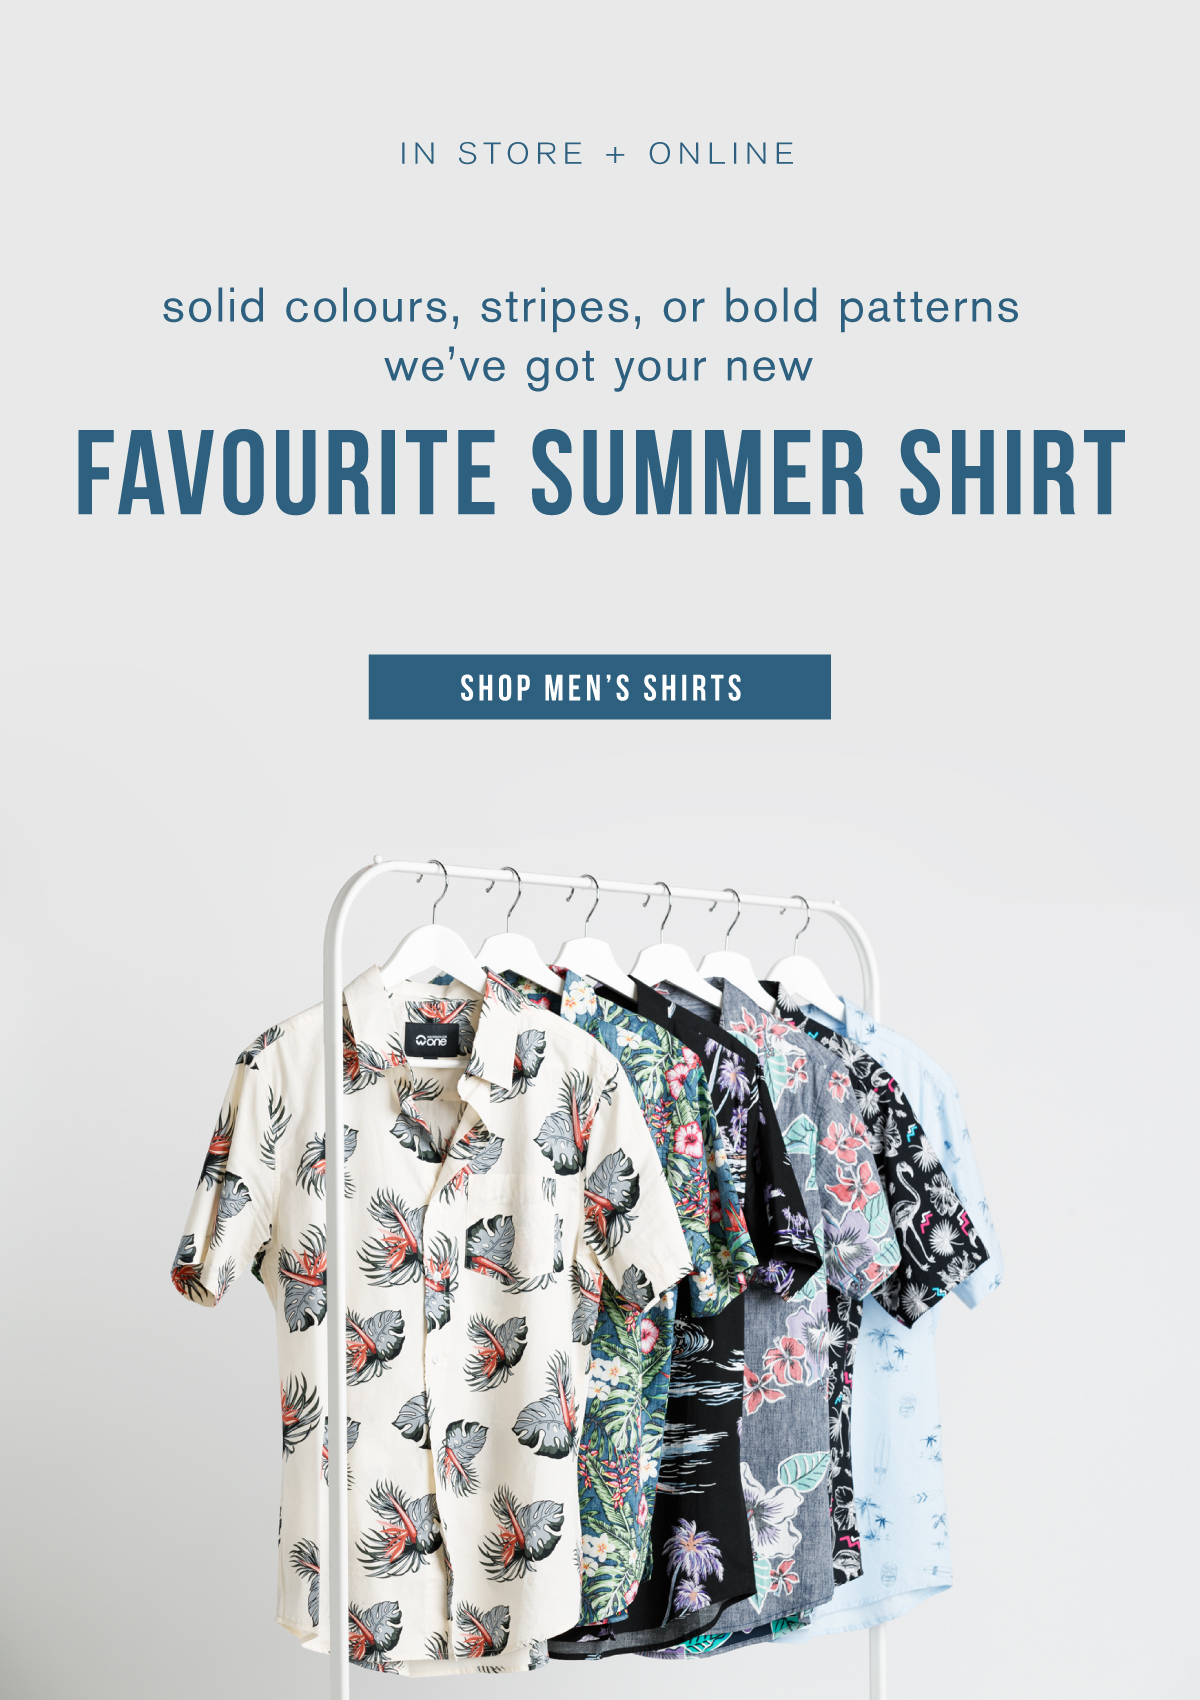 In store and online. Solid colours, stripes, or bold patterns. We've got your new favourite summer shirt. Shop men's shirts.